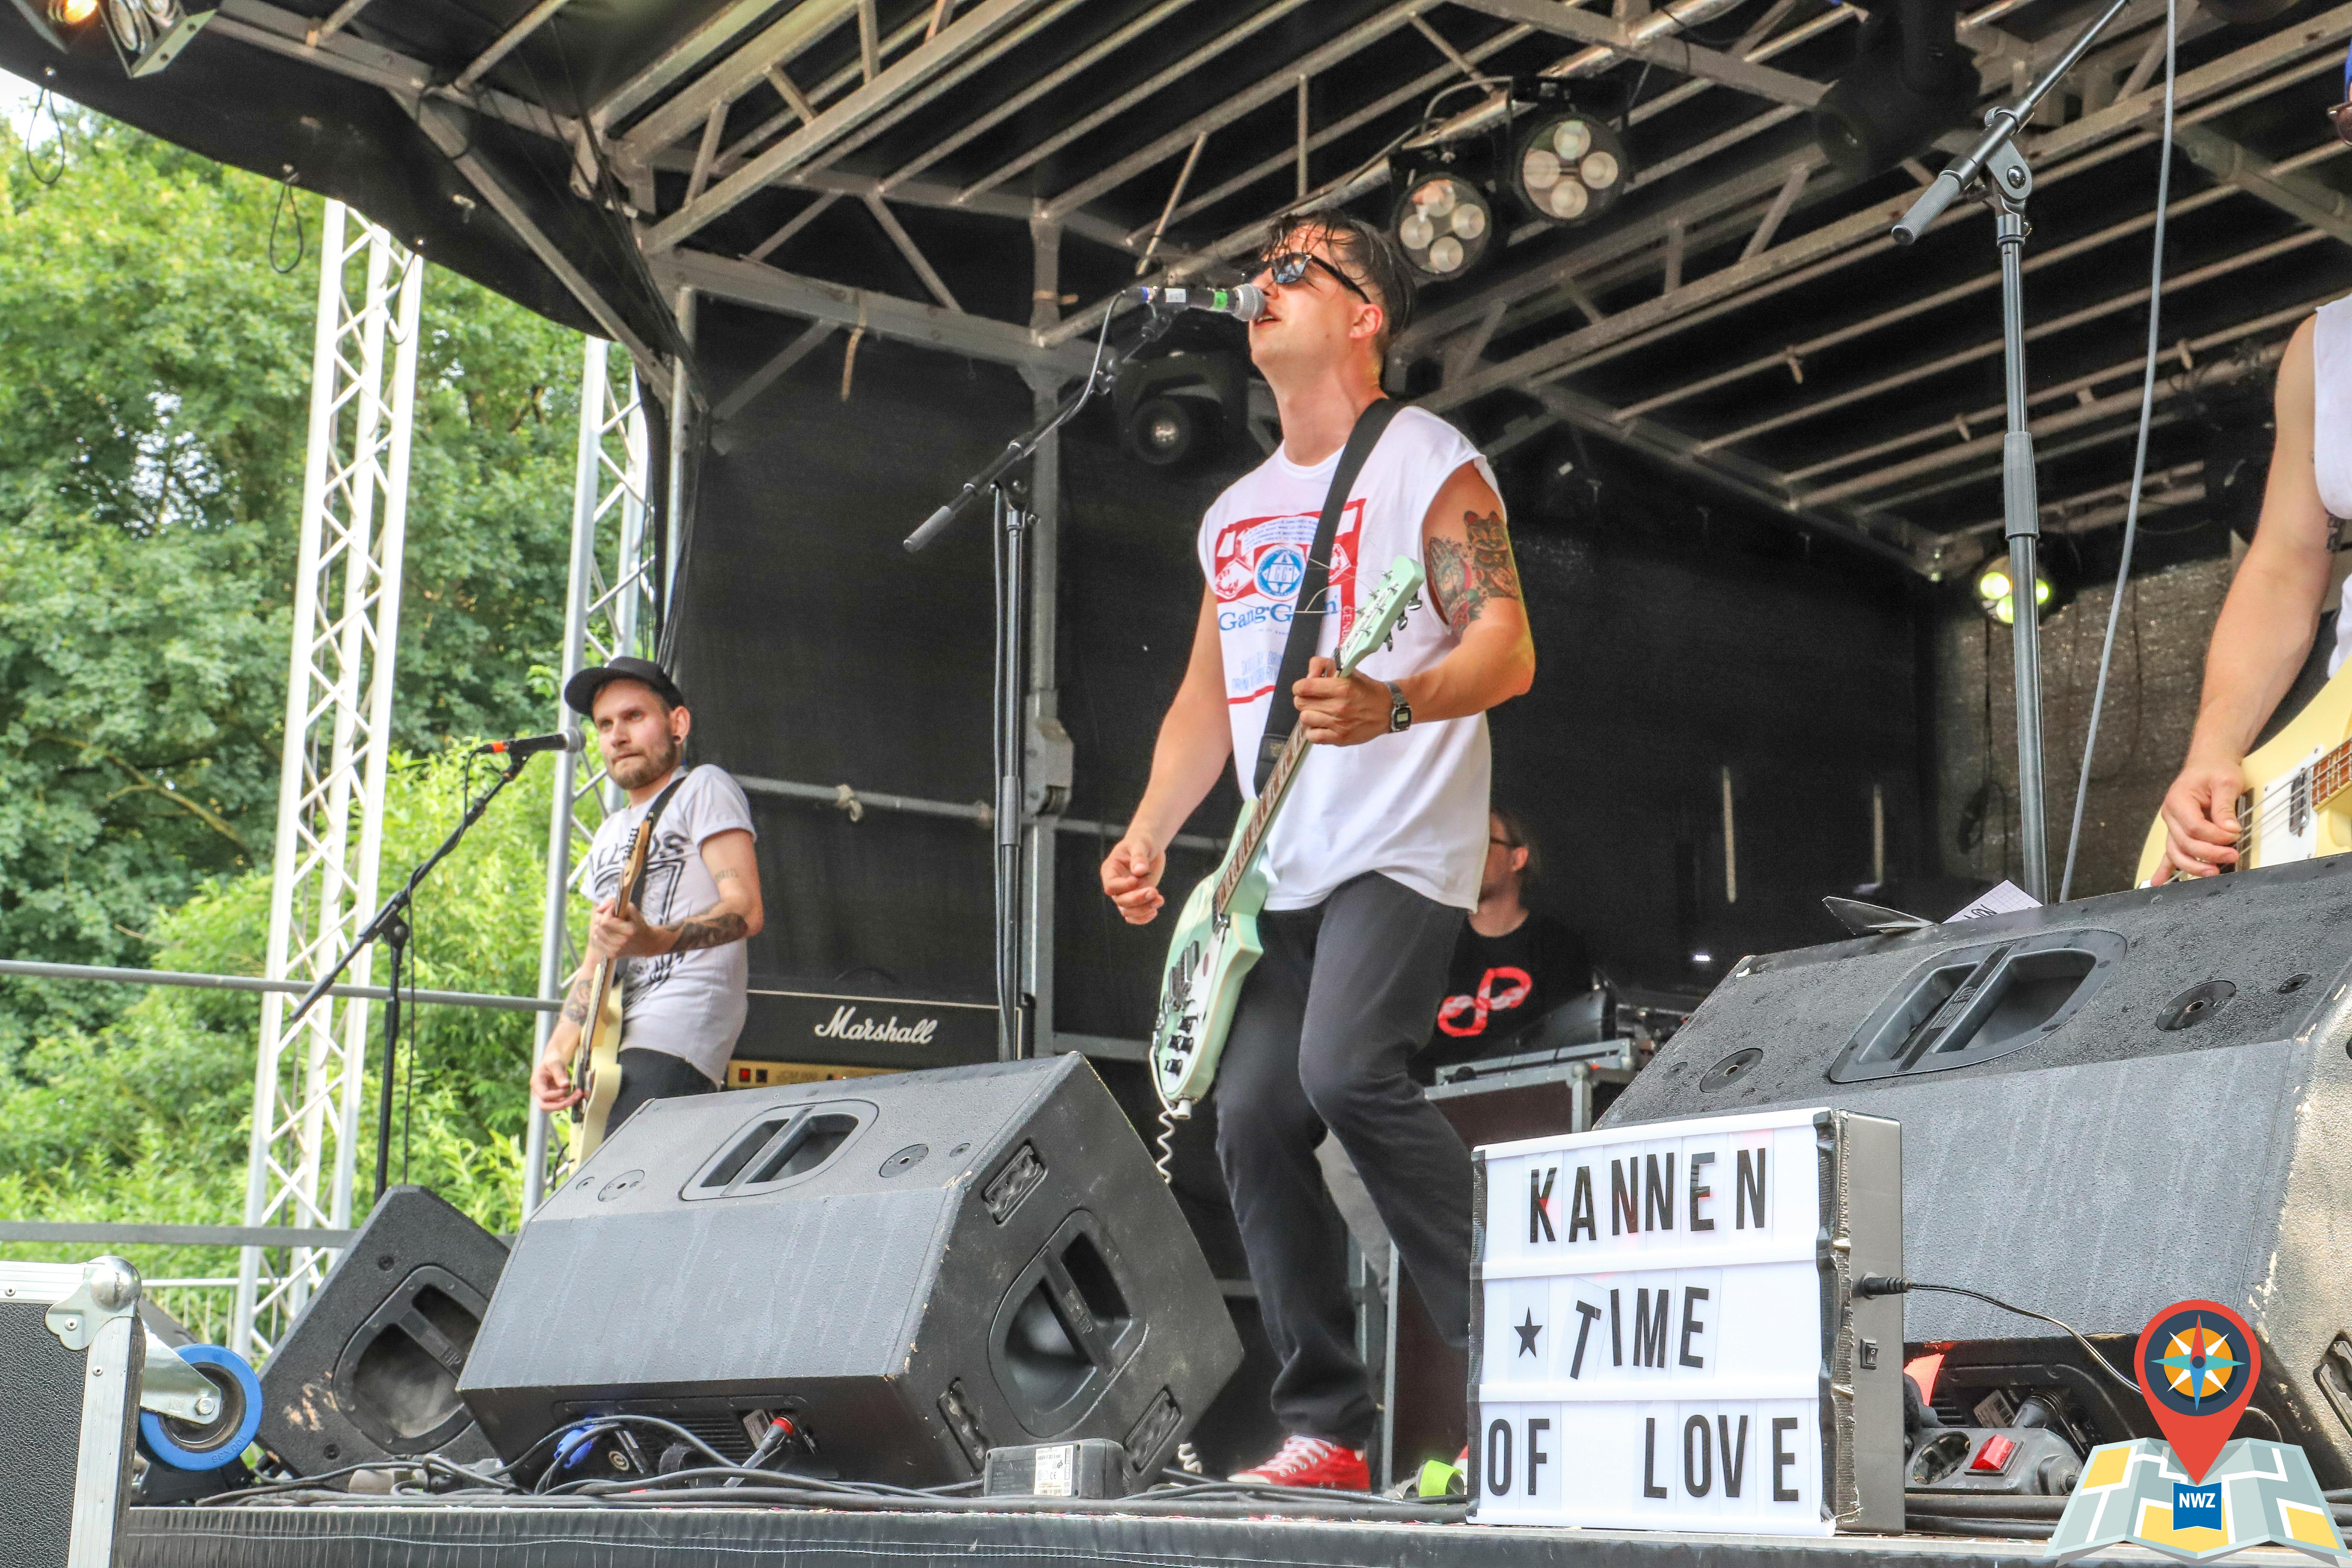 Fonsstock 2018, Samstag: Sewer Rats (Foto: Claus Hock)